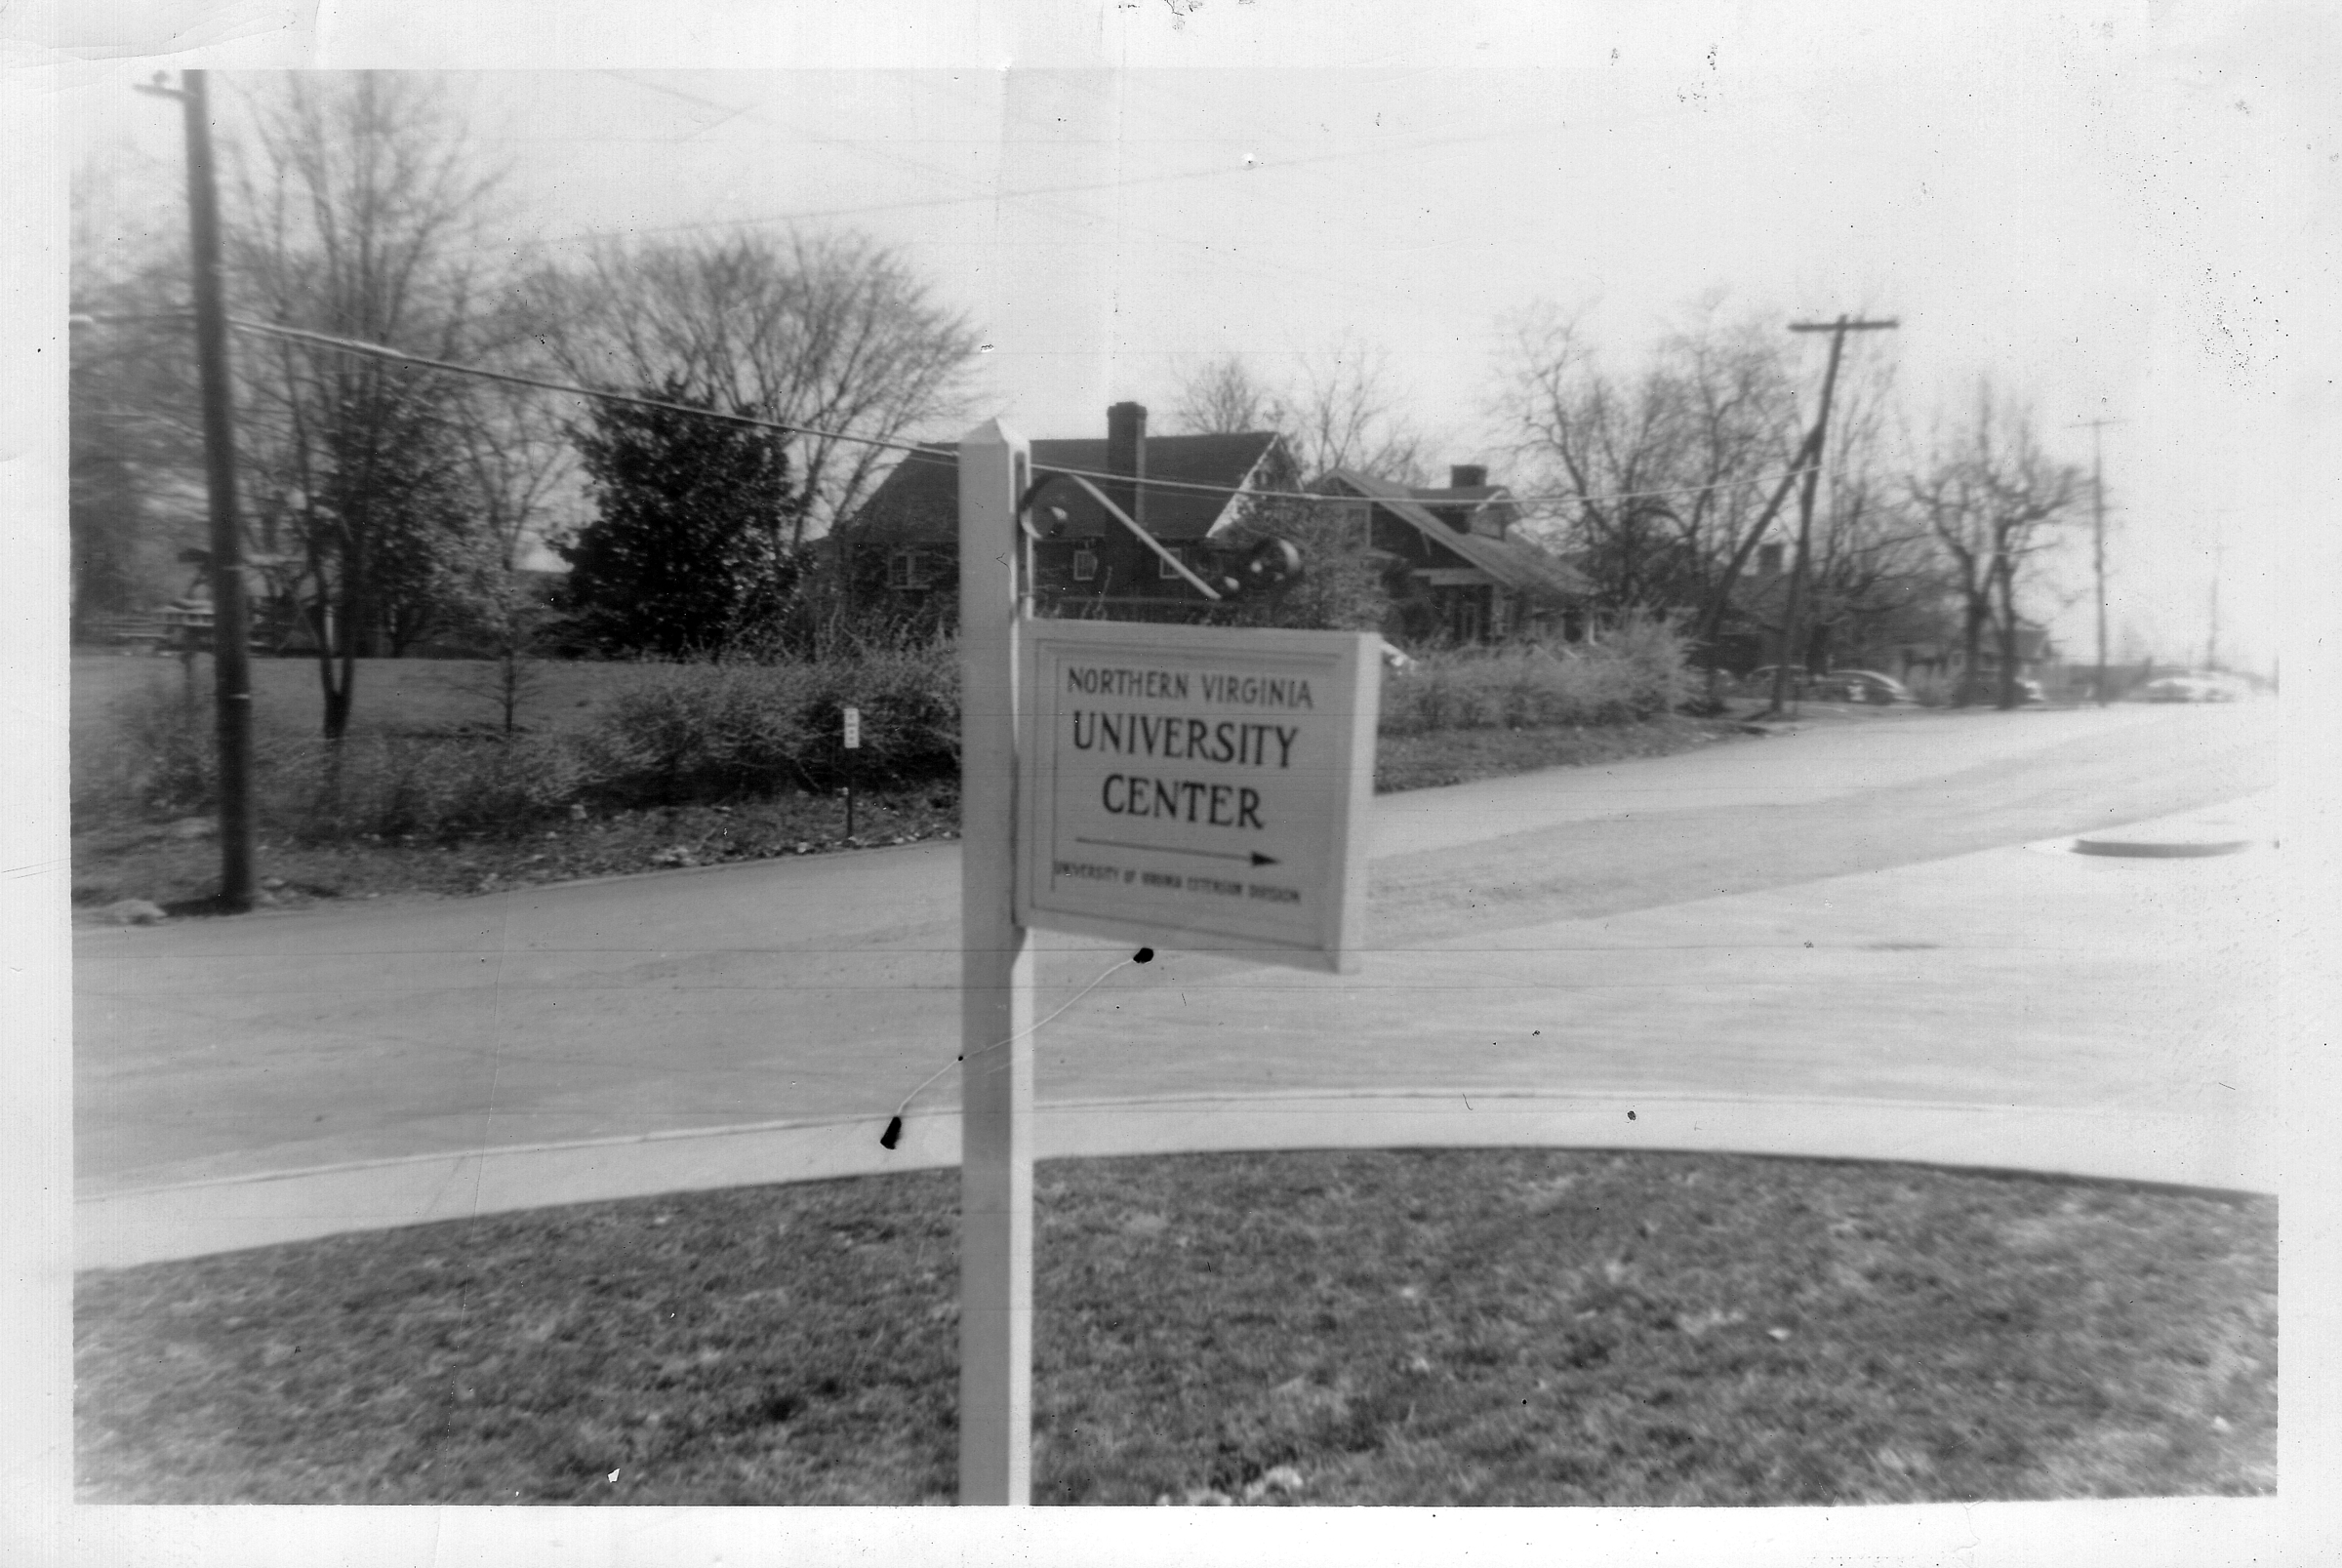 Sign: Northern Virginia University Center, 1953.